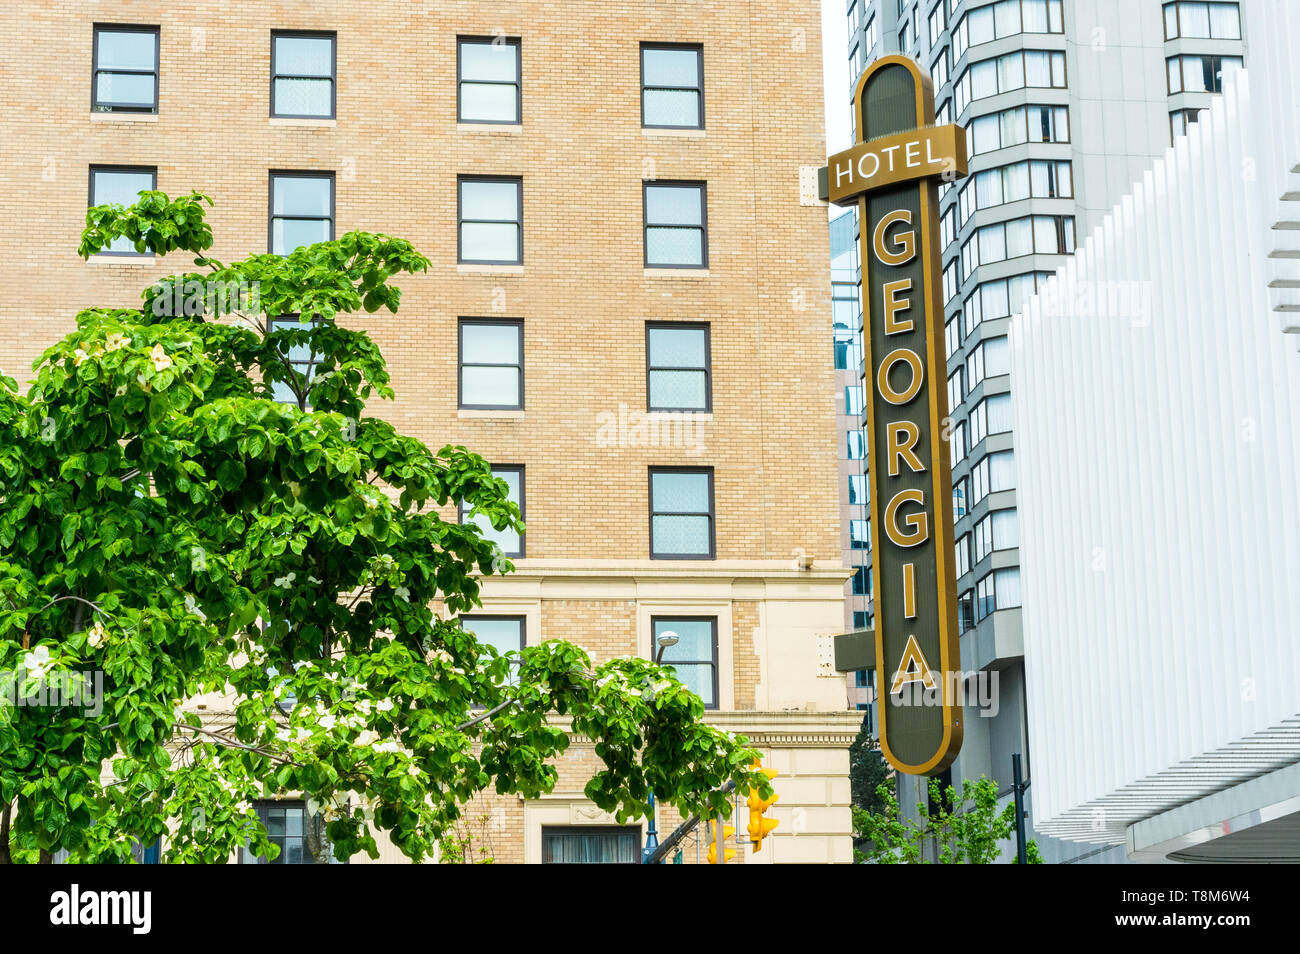 May 12, 2019 - Vancouver, Canada: Rosewood Hotel Georgia luxury accommodation building exterior at Georgia and Howe Streets. Stock Photo